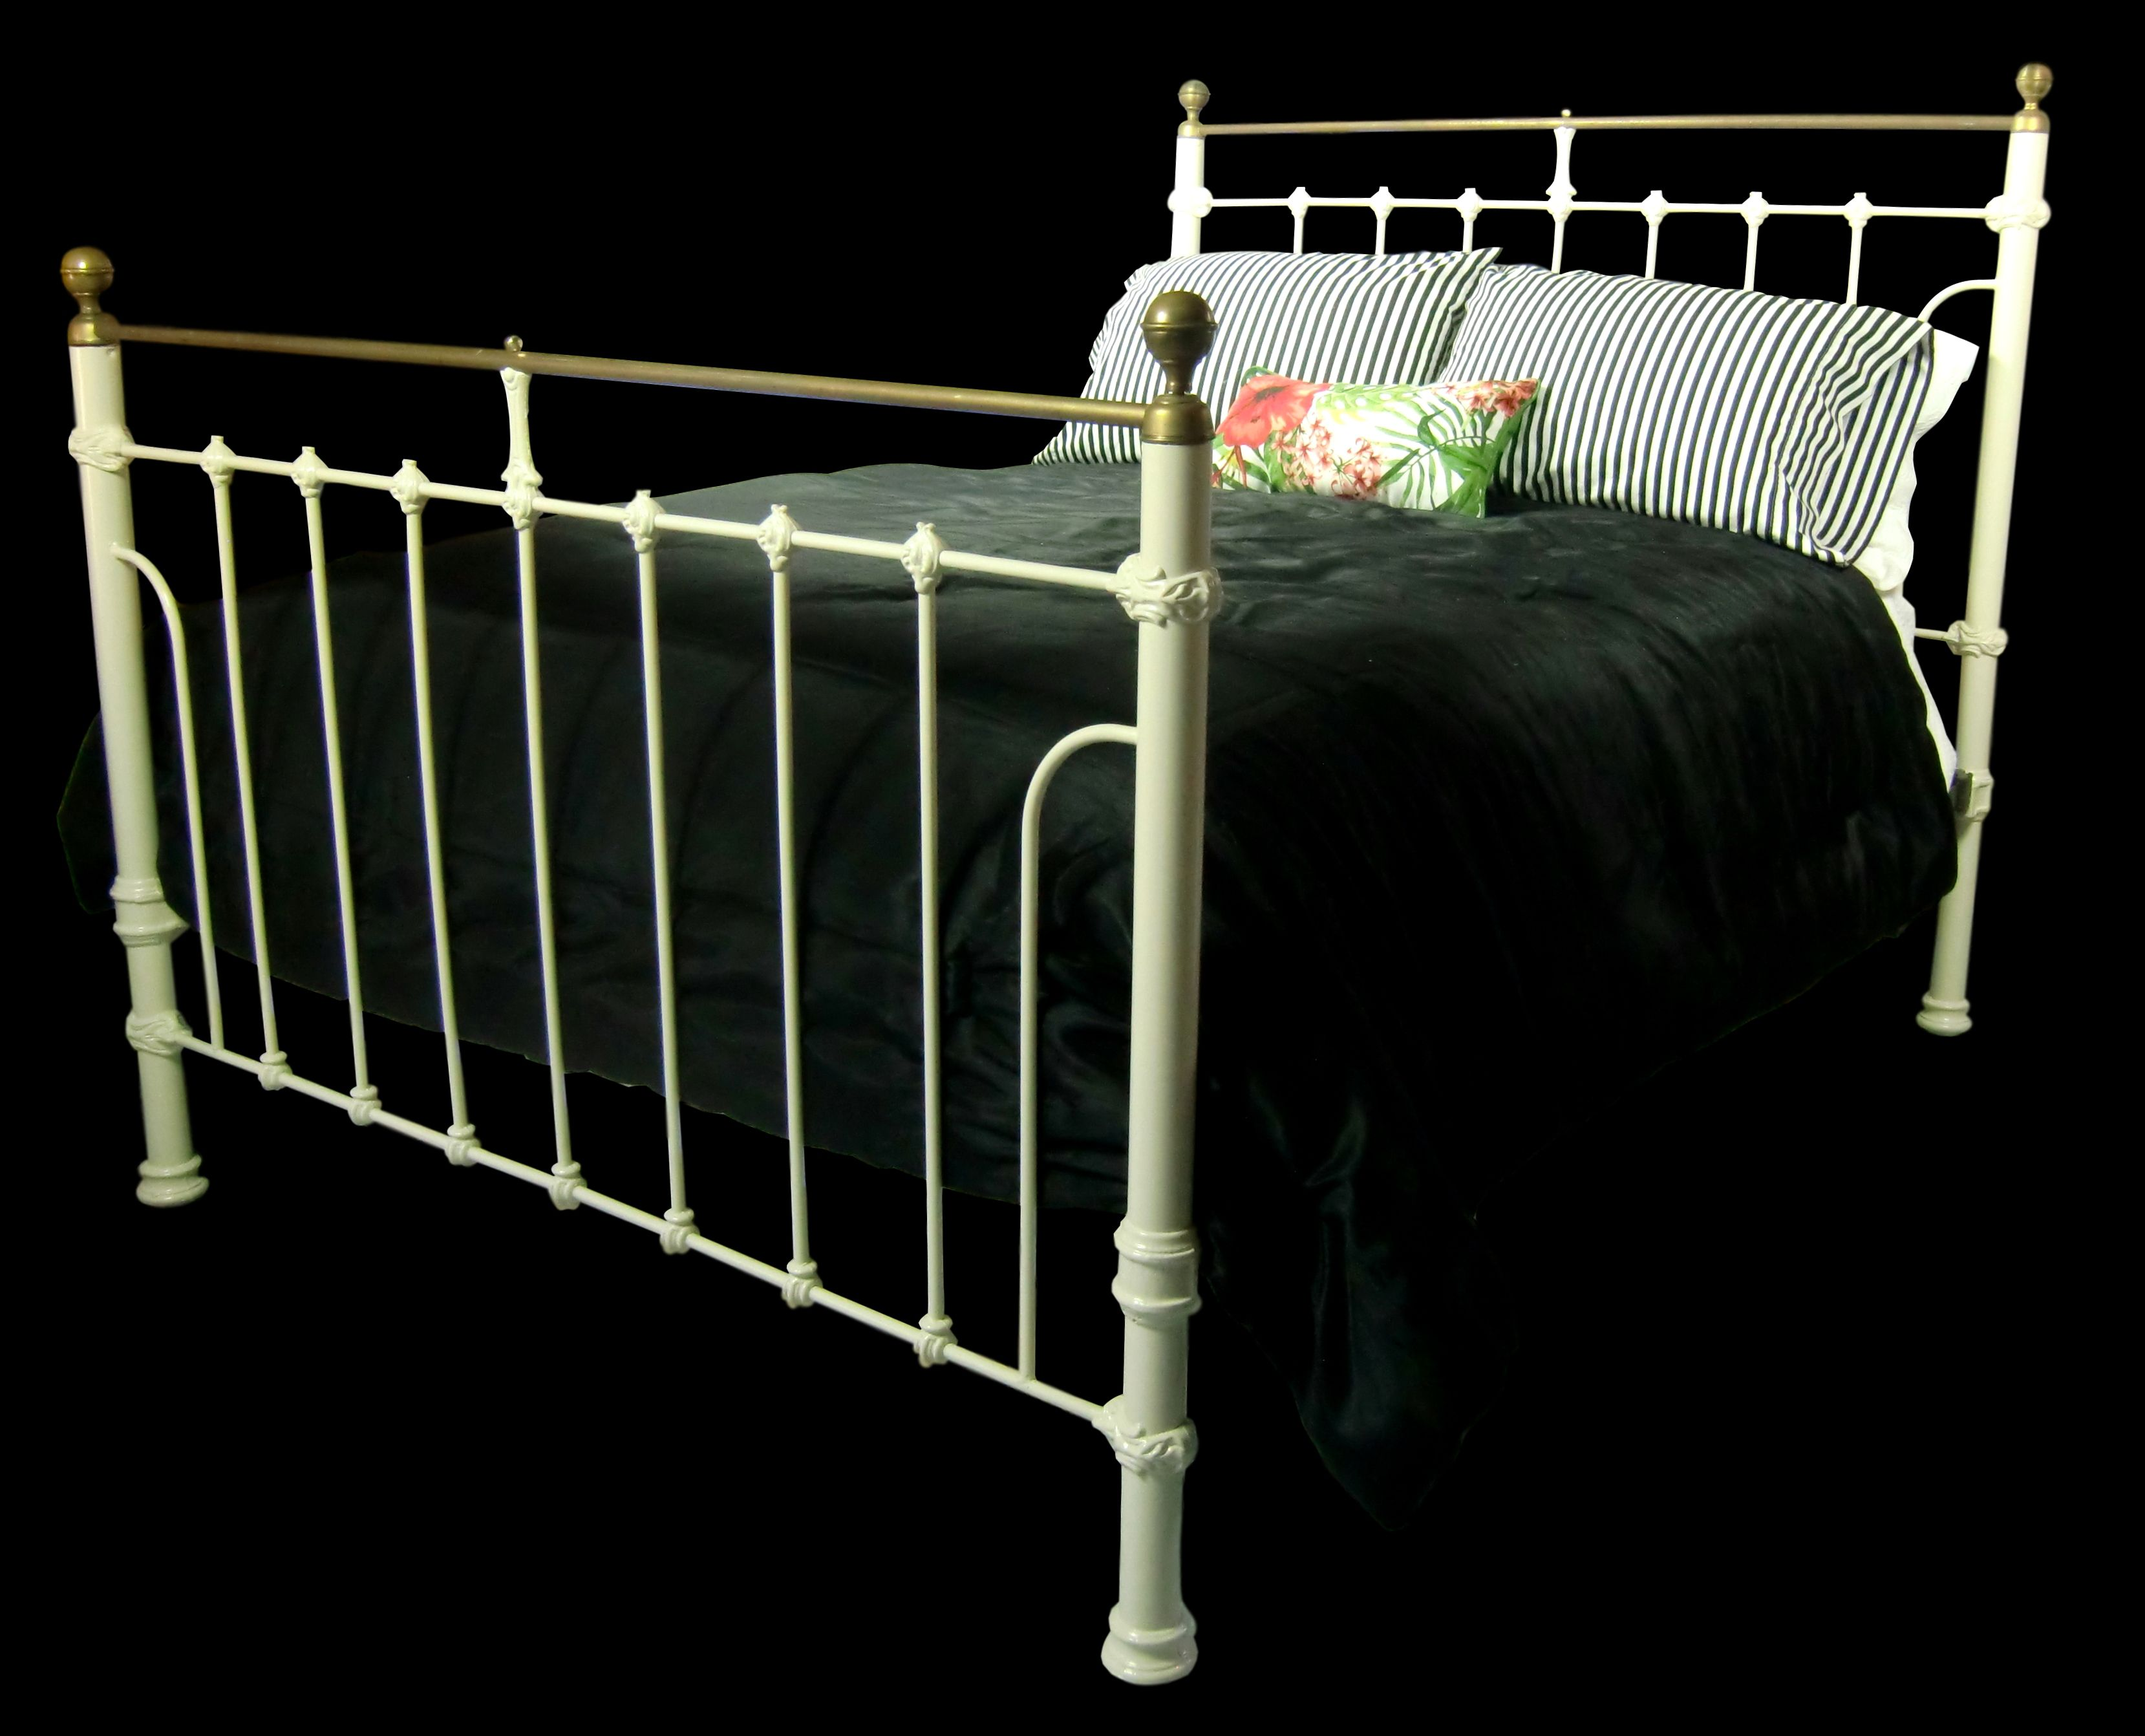 Queen Antique Iron Bed Cast Iron Bed Antique Iron Bed Etsy Cast Iron Beds Antique Iron Beds Wrought Iron Beds